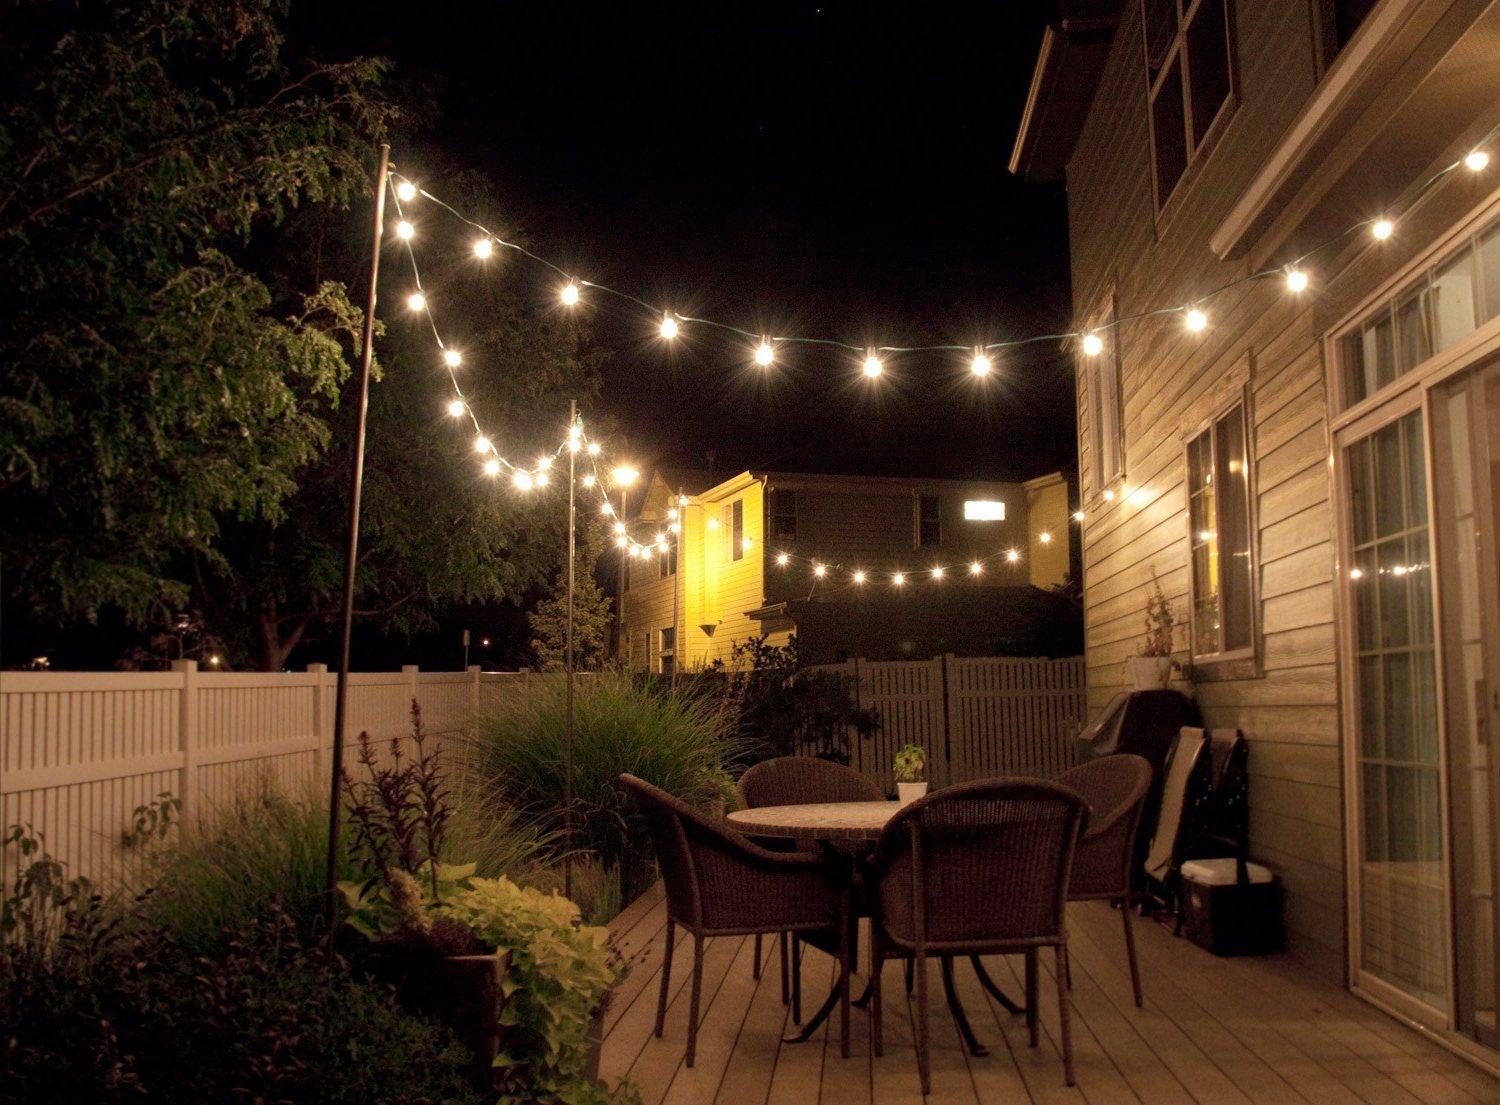 Outdoor Lanterns At Pottery Barn In Most Up To Date Pottery Barn String Lights Reviews – Lights Design Ideas (View 13 of 20)